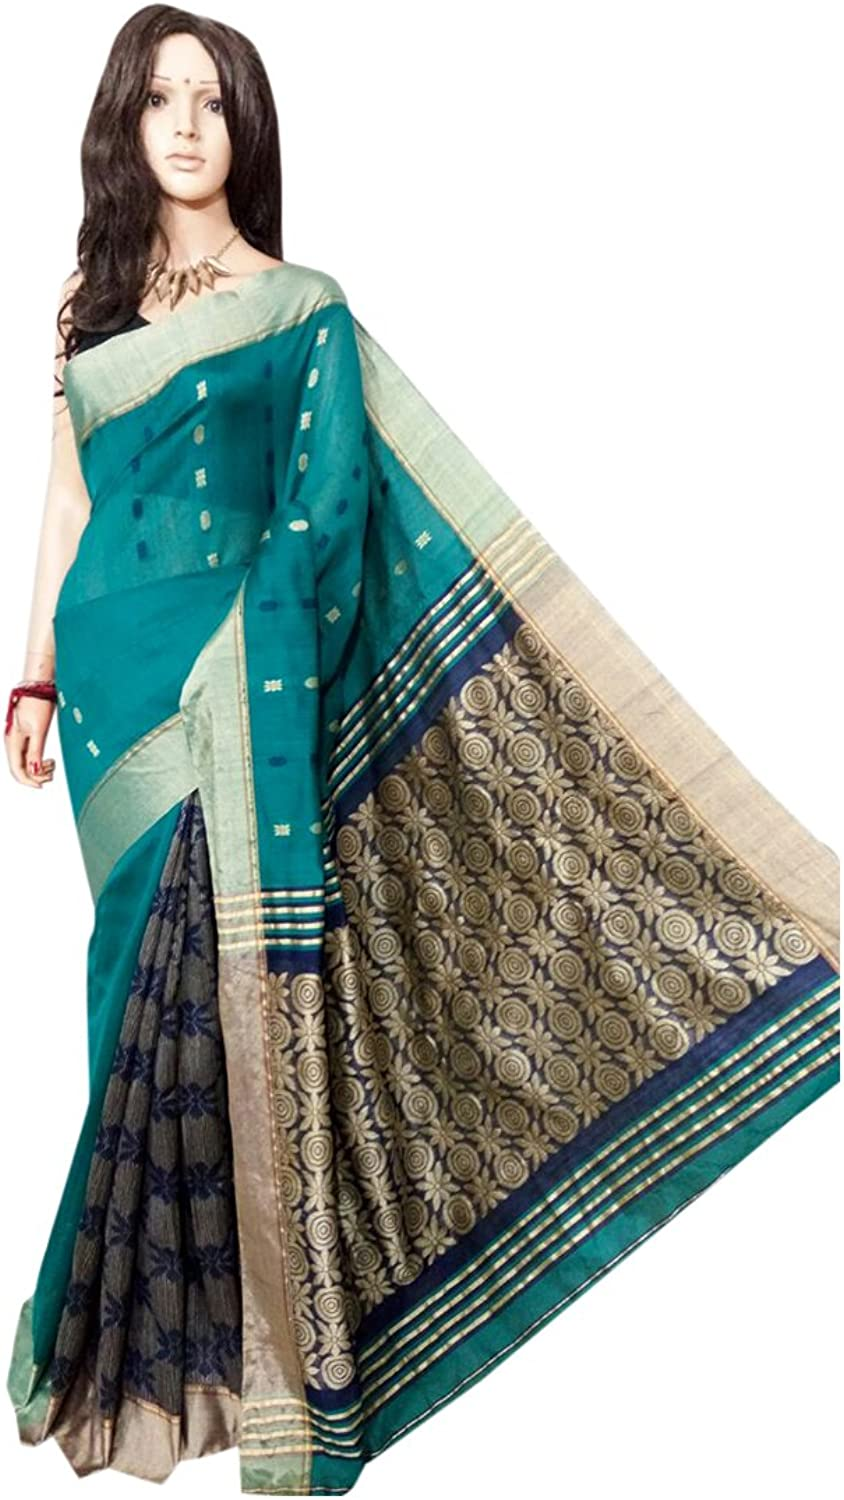 Handloom Silk Handwork Saree Ethnic Indian Beautiful Zari Pallu Traditional Sari with Blouse Piece handmade Bengal Weavers 103